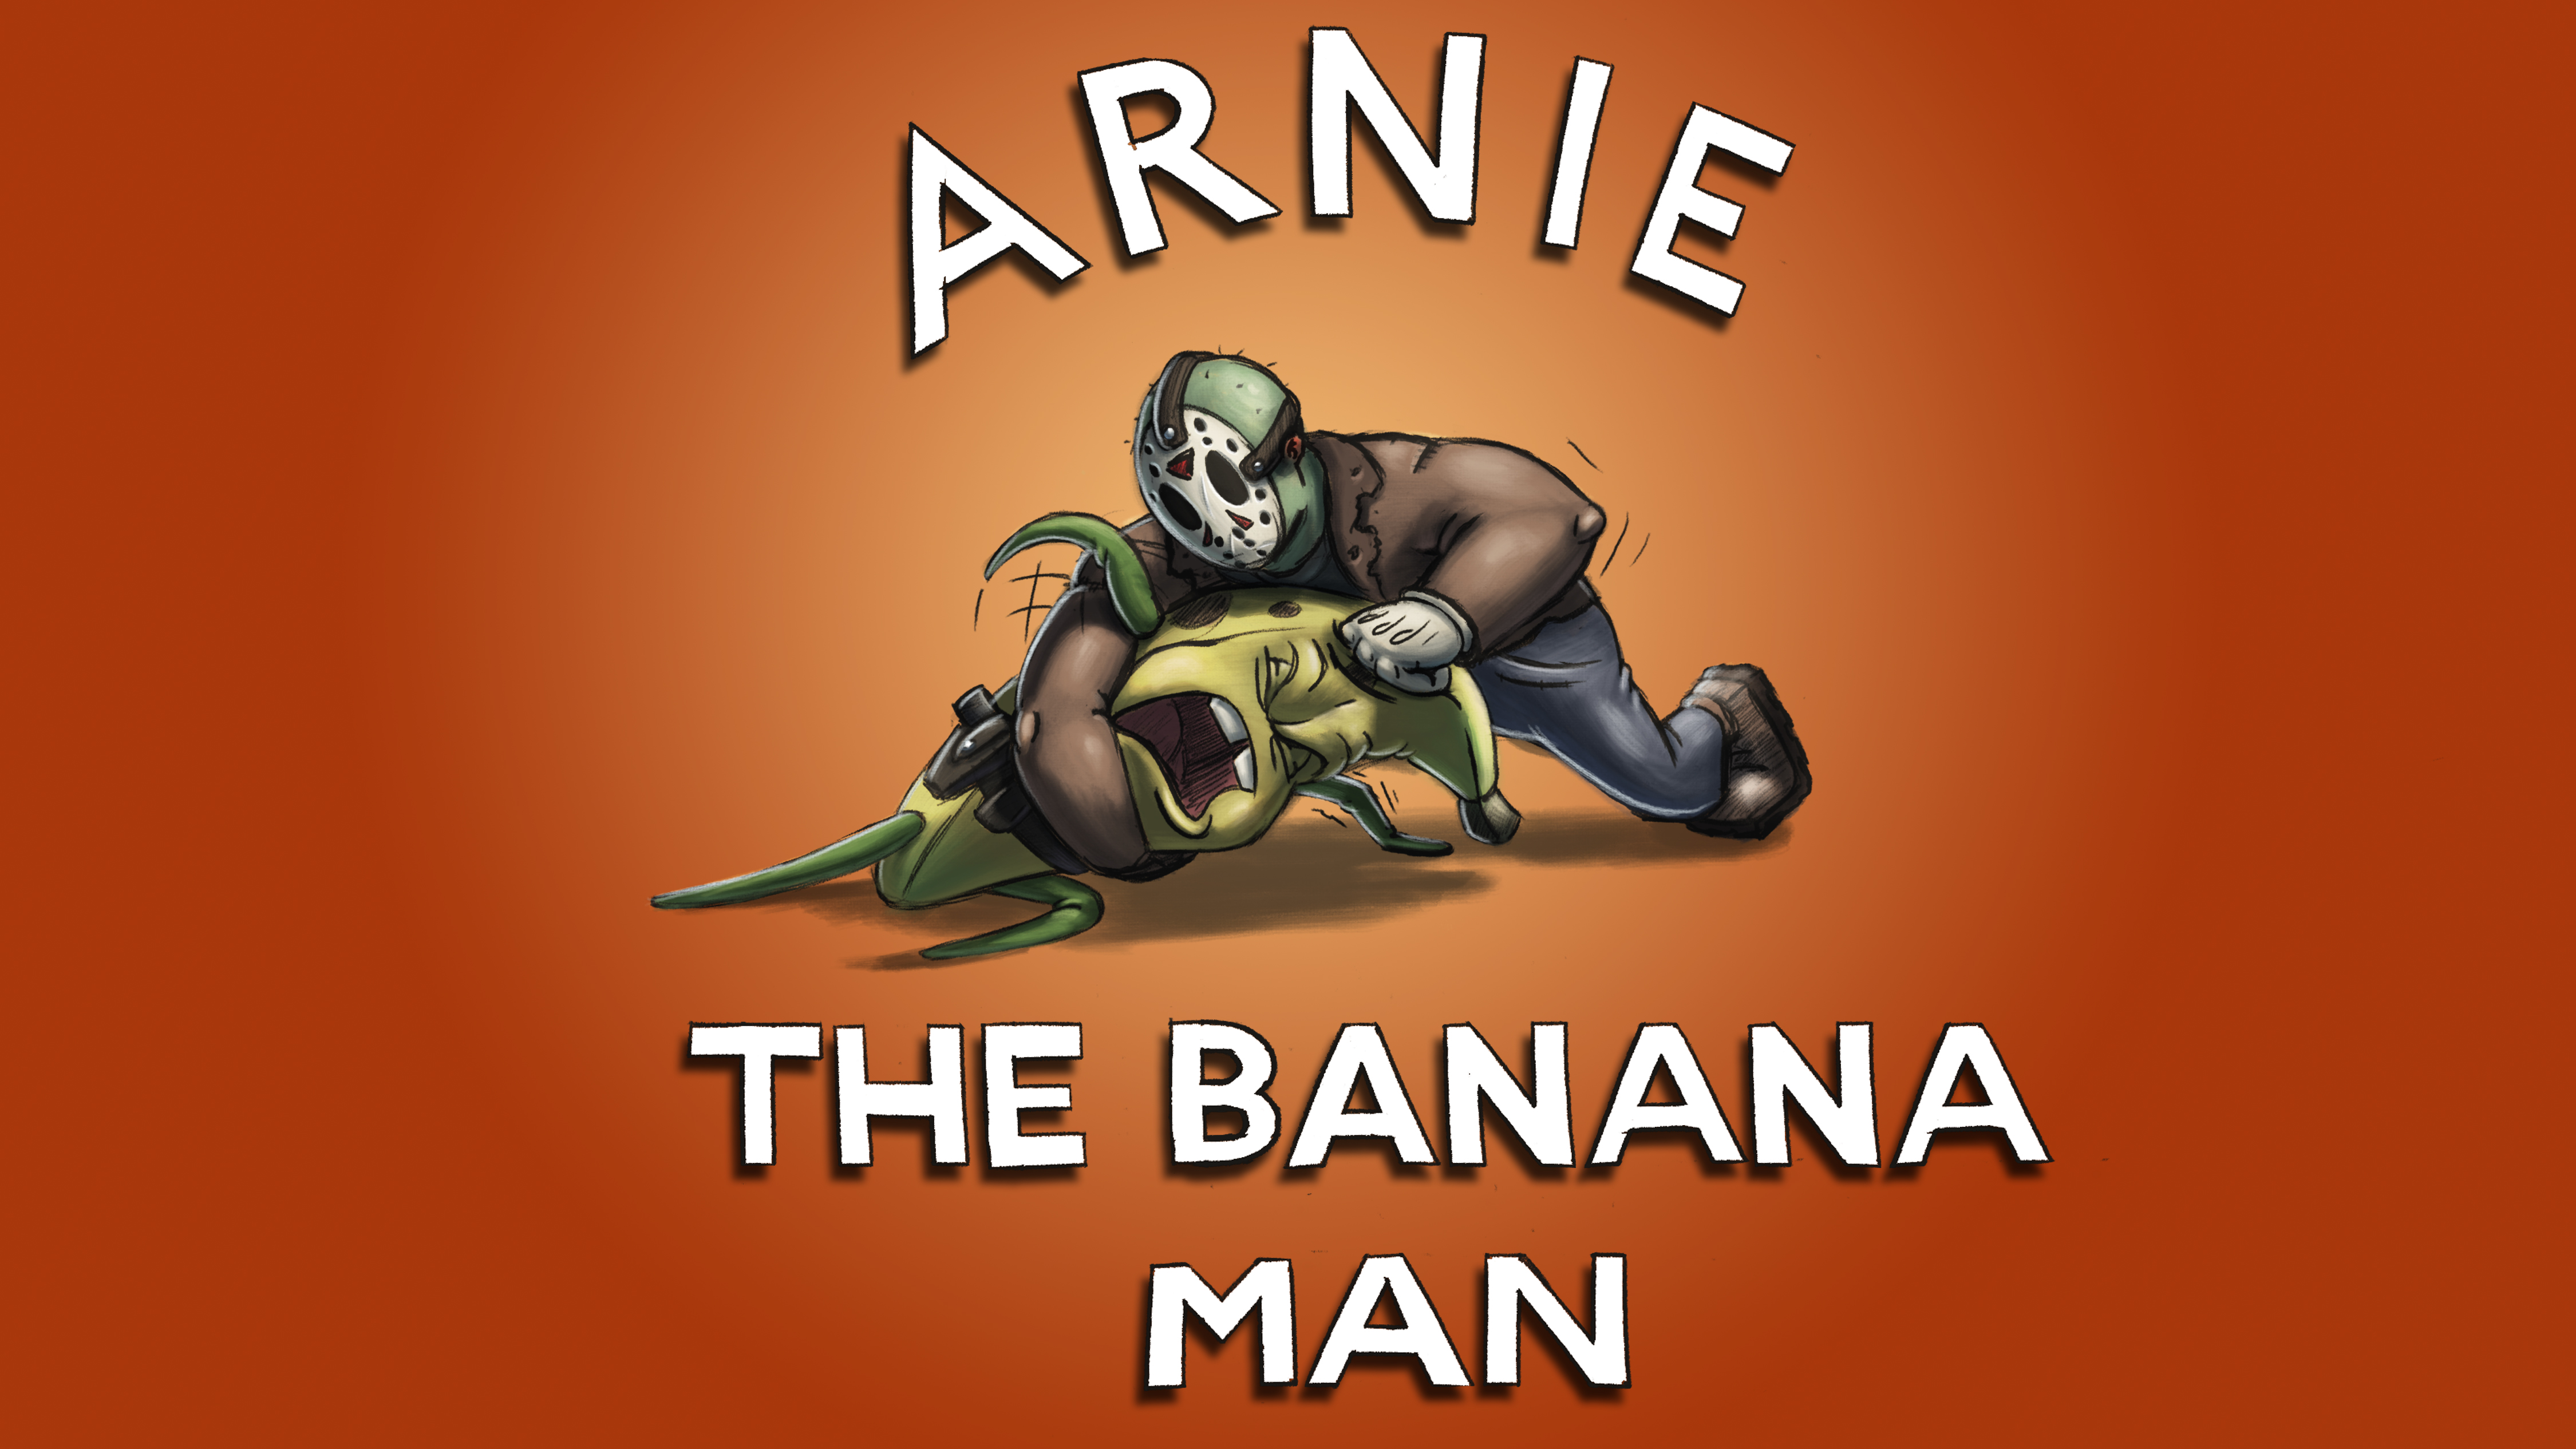 ARNIE THE BANANA MAN Thumbnail